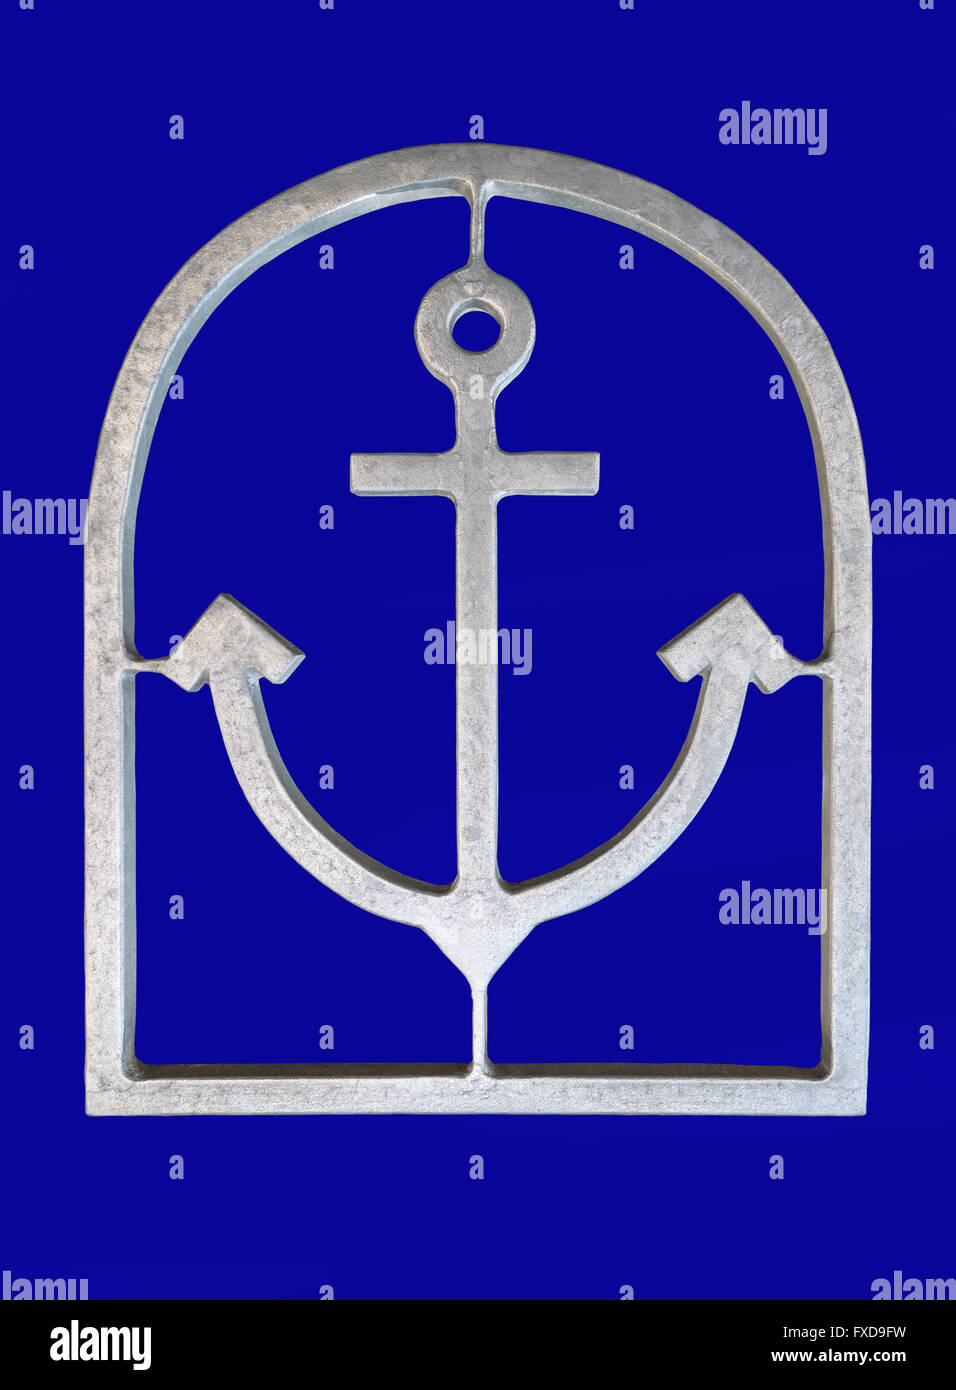 Silver anchor in a frame - Stock Image